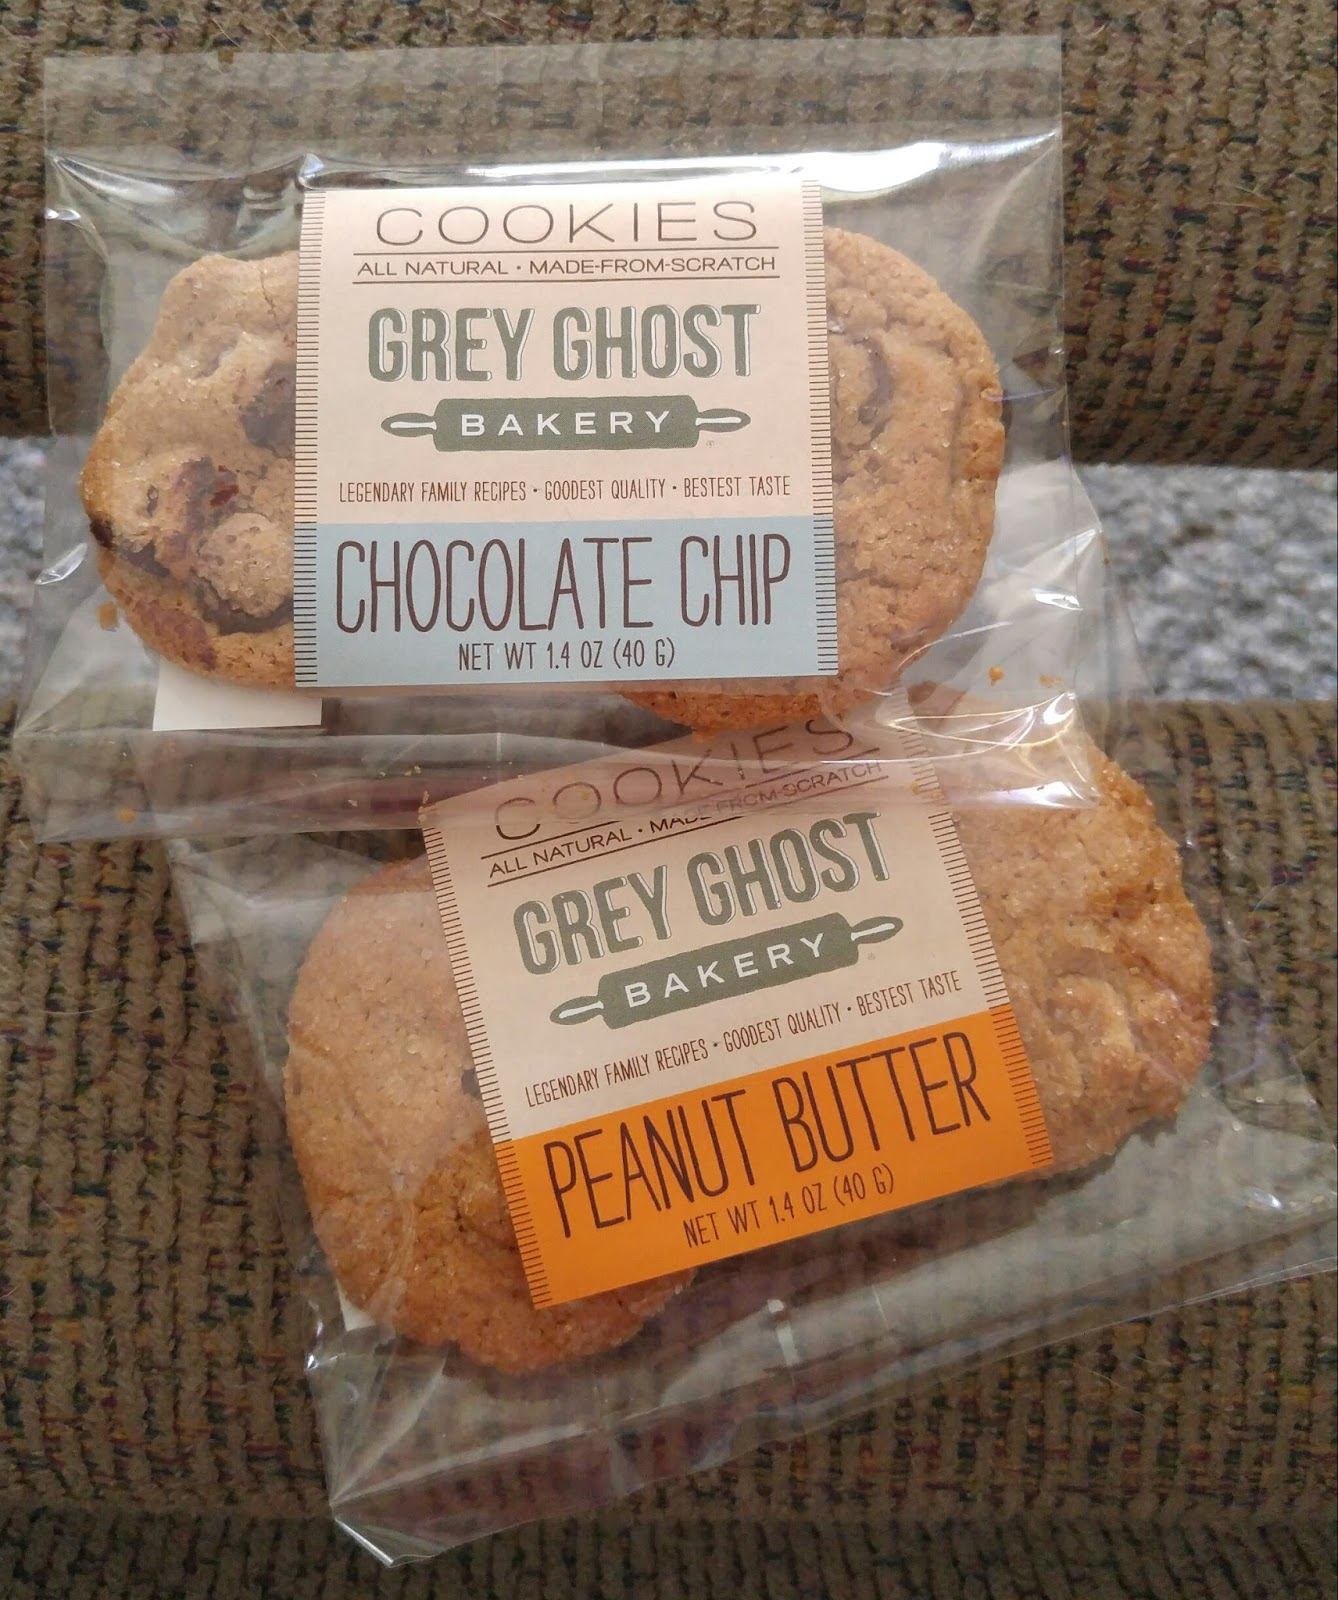 Grey Ghost Chocolate Chip Cookies